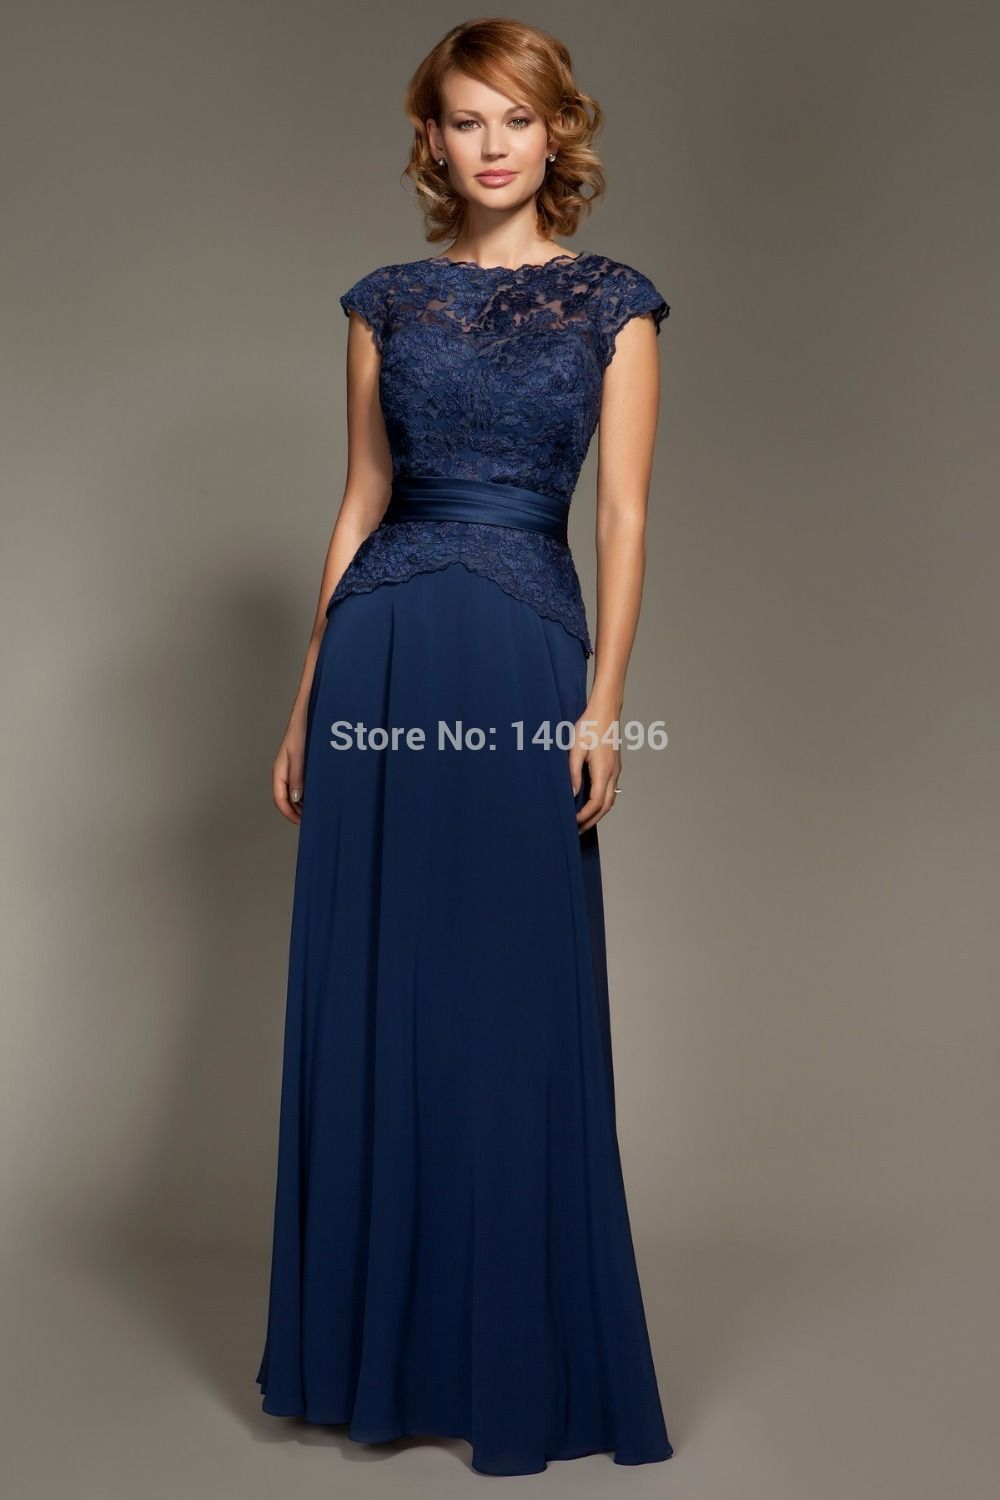 Navy blue full length bridesmaid dress lace peplum google search